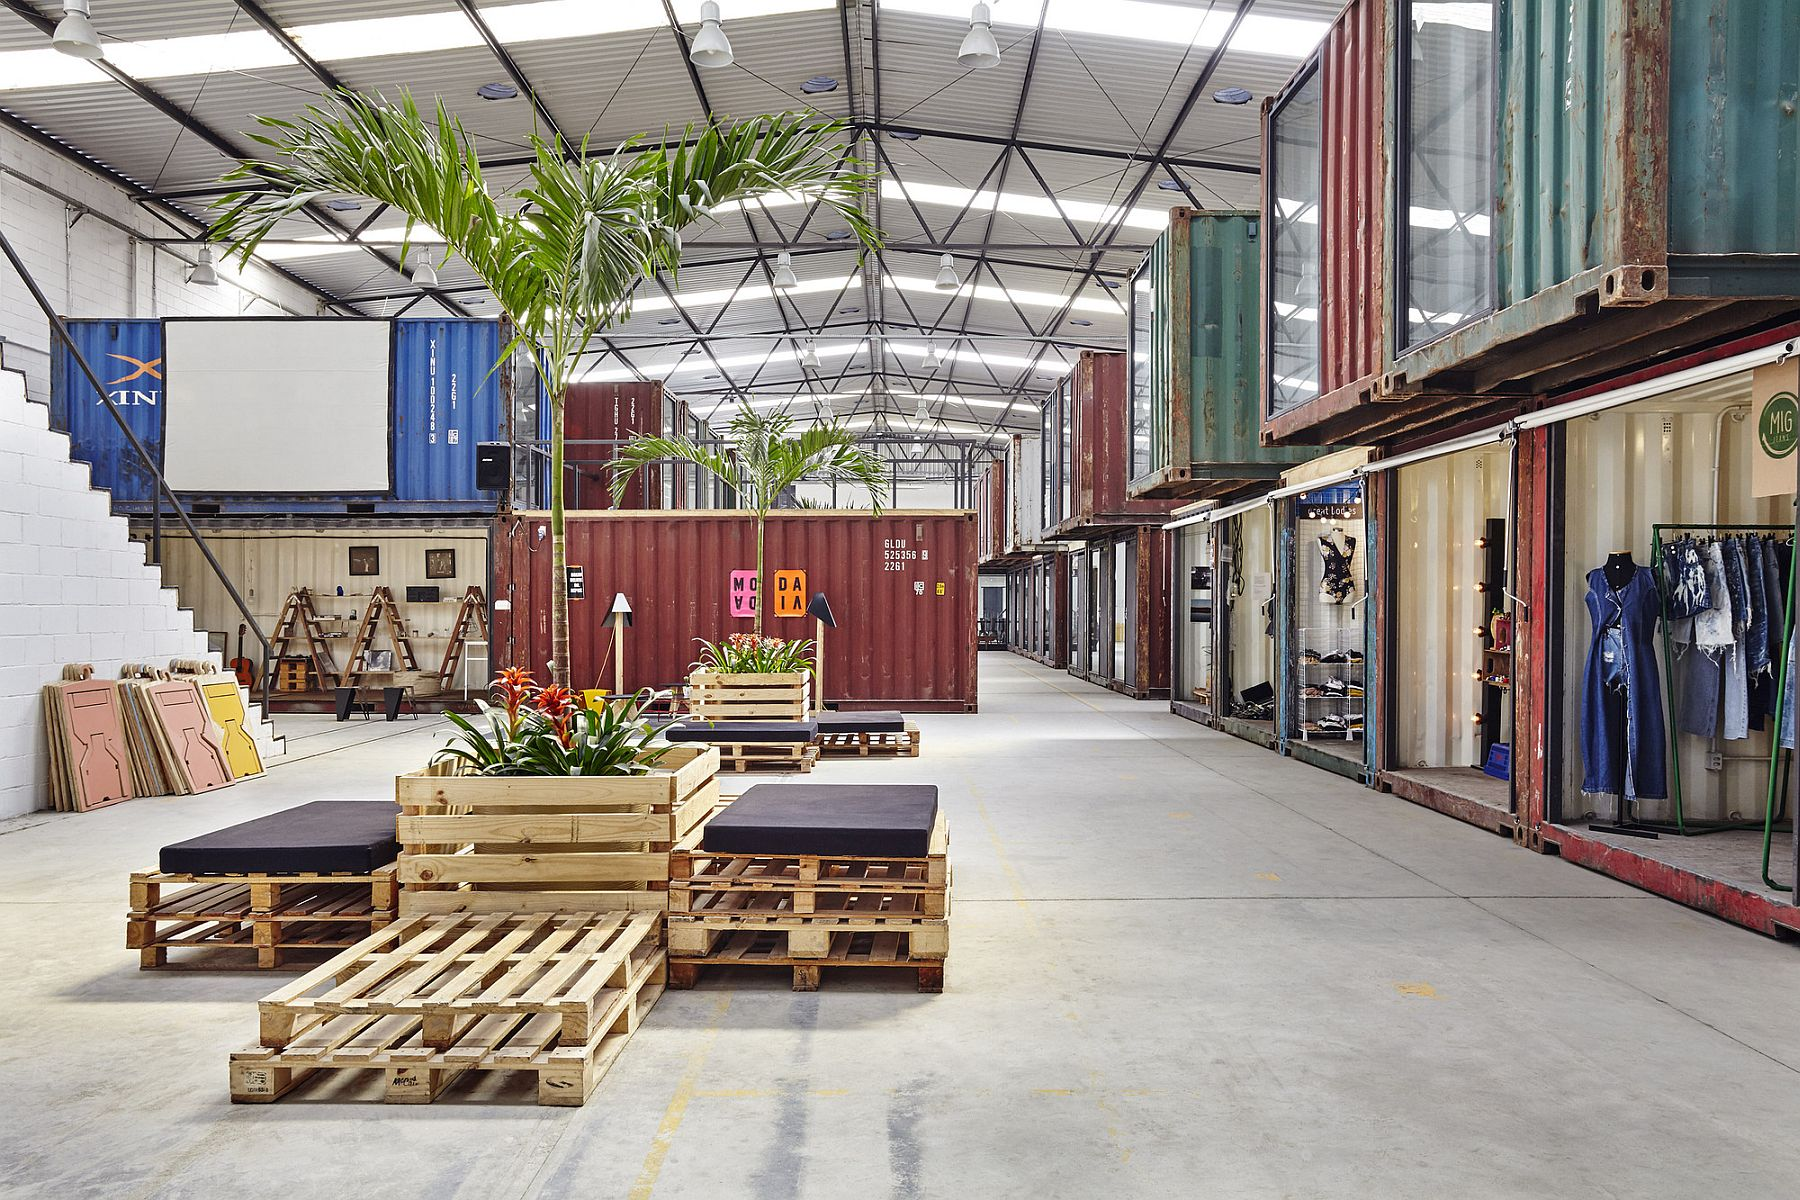 42 Repurposed Containers Inside a Warehouse Reshape Rio?s Fashion Scene!